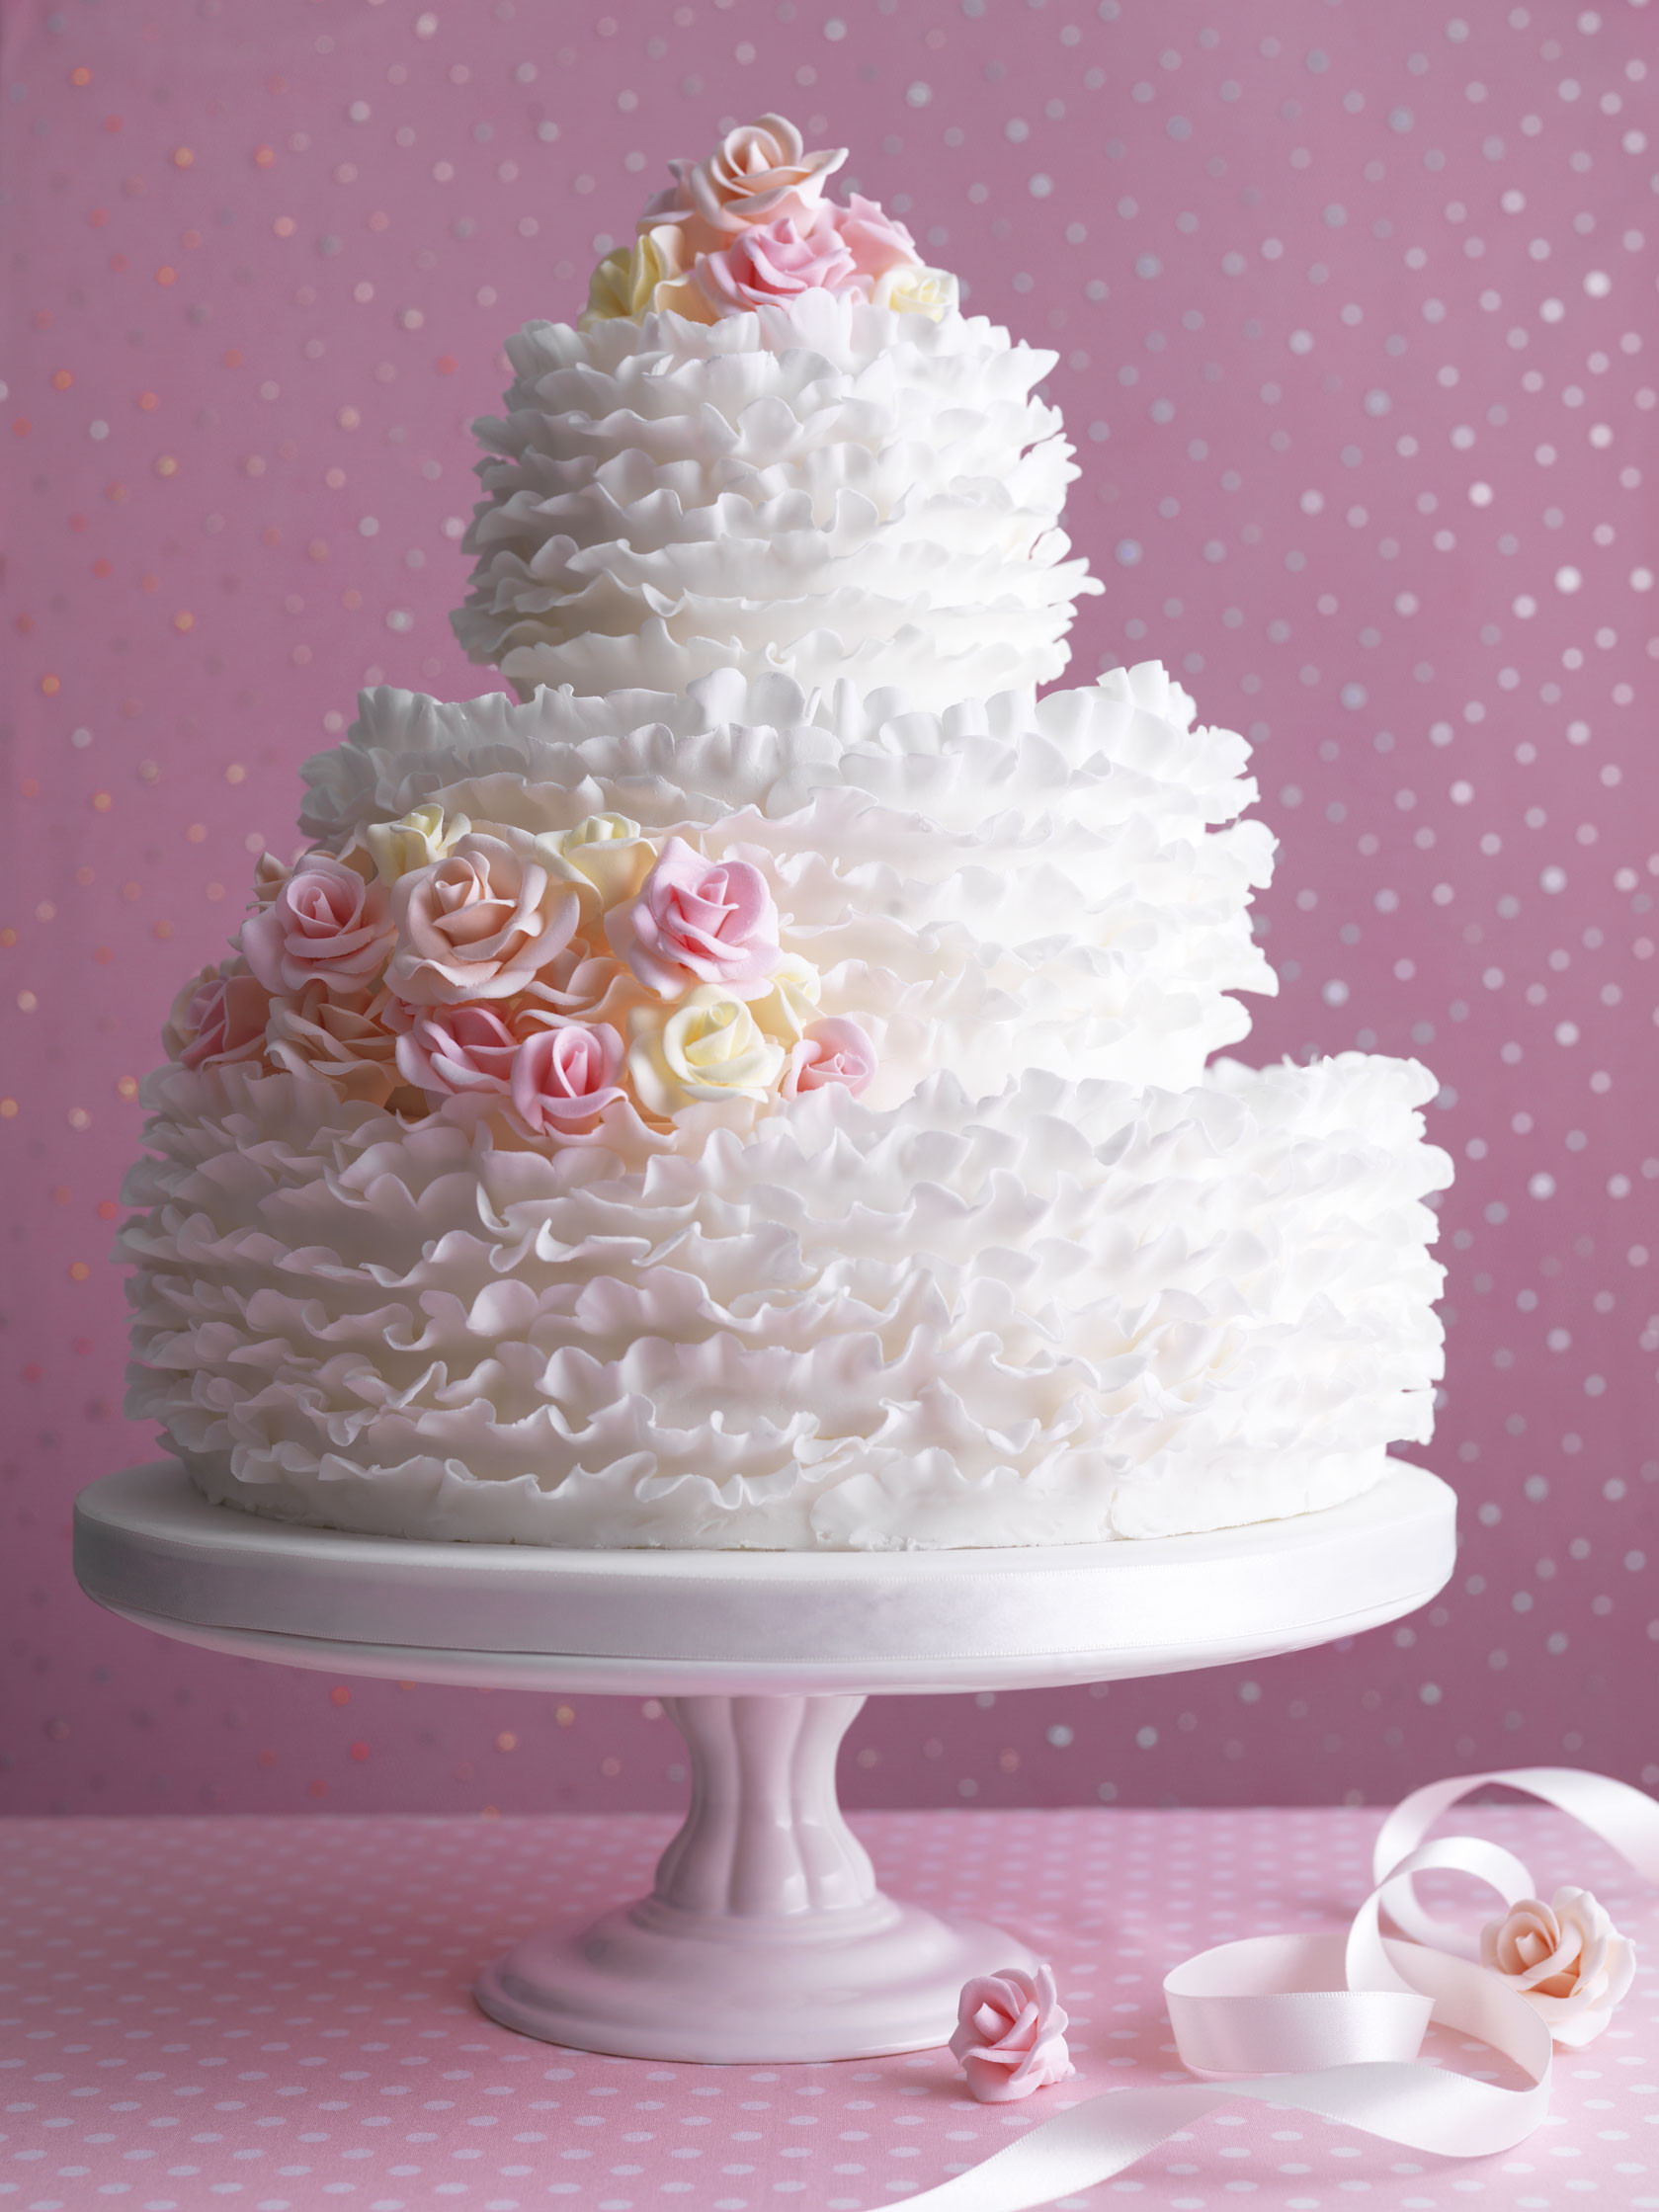 Making A Wedding Cakes  How to make a wedding cake